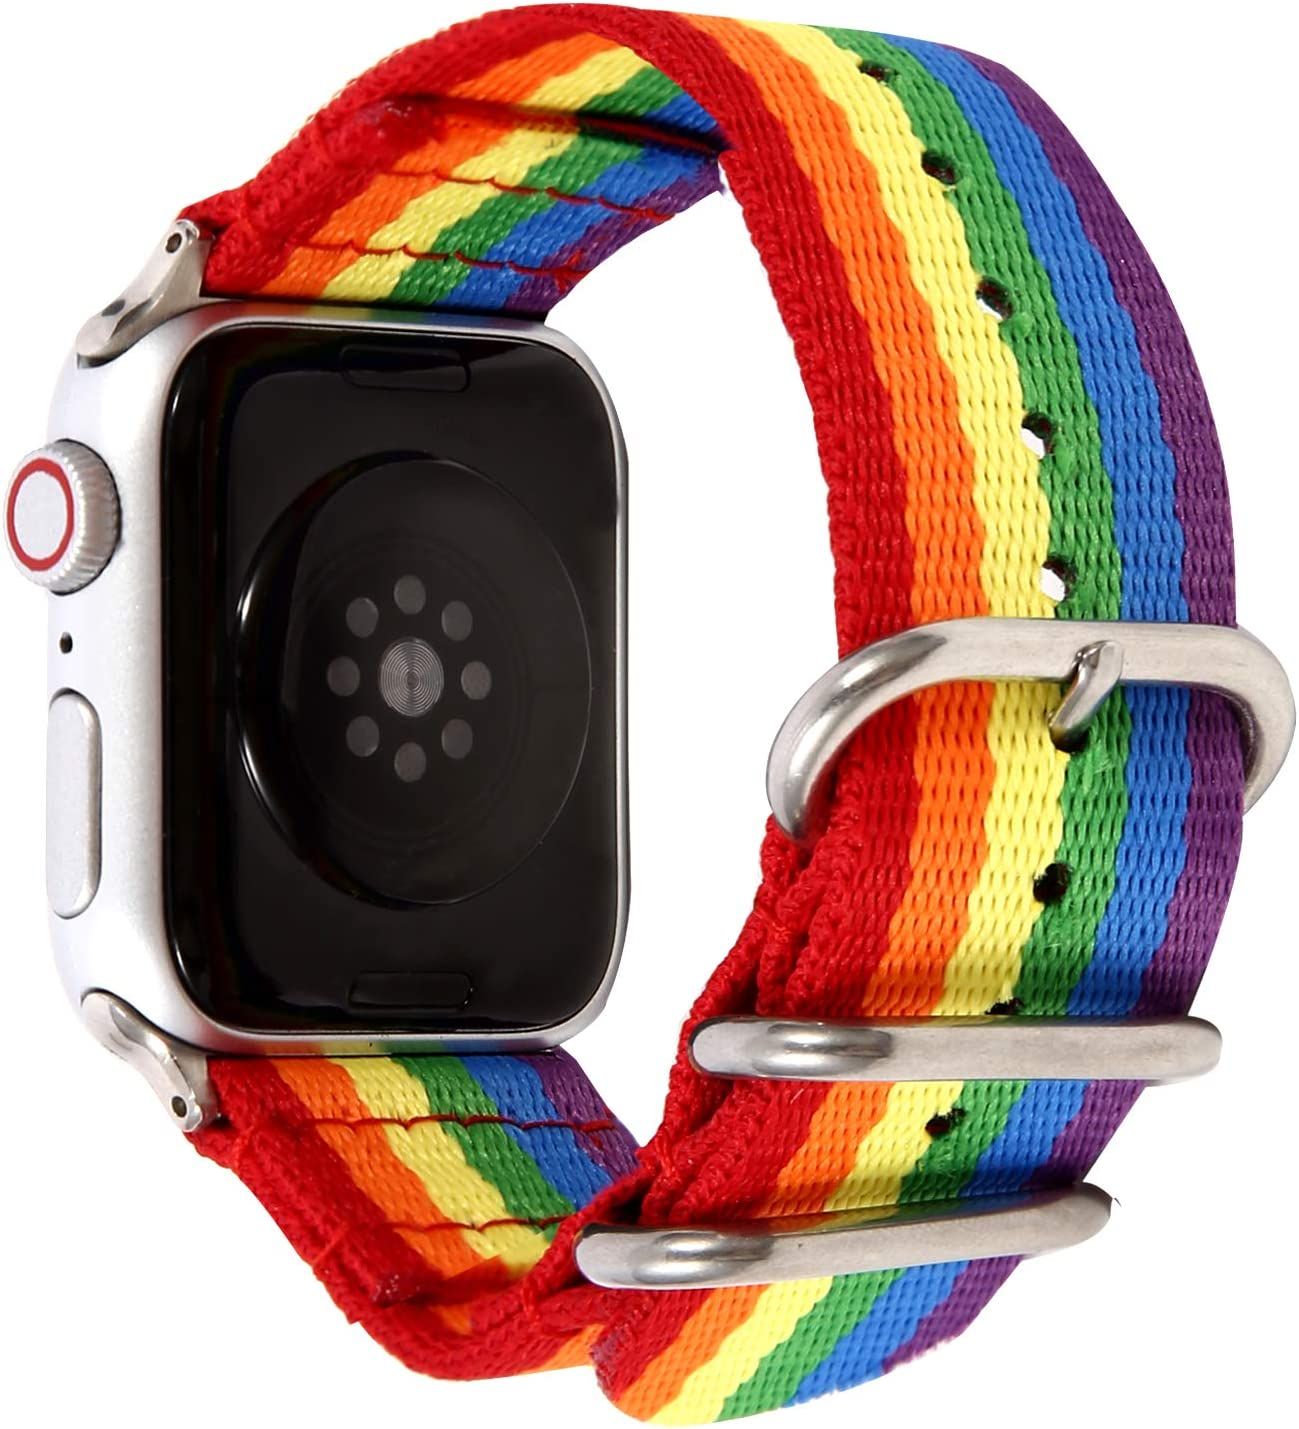 Compatible for Apple Watch Bands,Oimaigroo Replacement LGBT Straps Bracelets Nylon Fabric Rainbow Elegant for iWatch 42mm/44mm